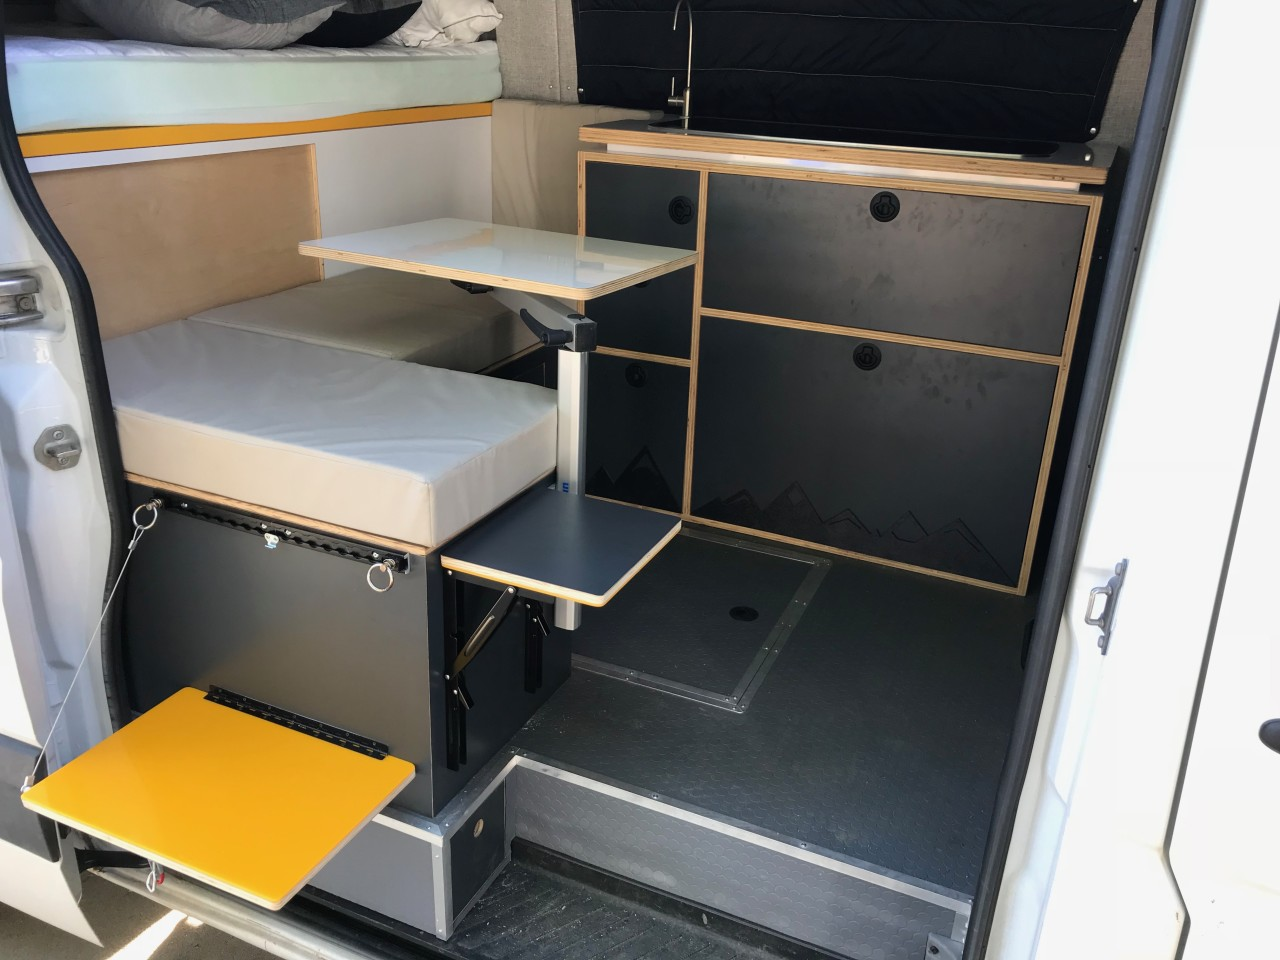 The fold-down yellow table offers a place to put your drink or do some outdoor cooking, while the flip-up gray top inside the doorway serves as a footrest